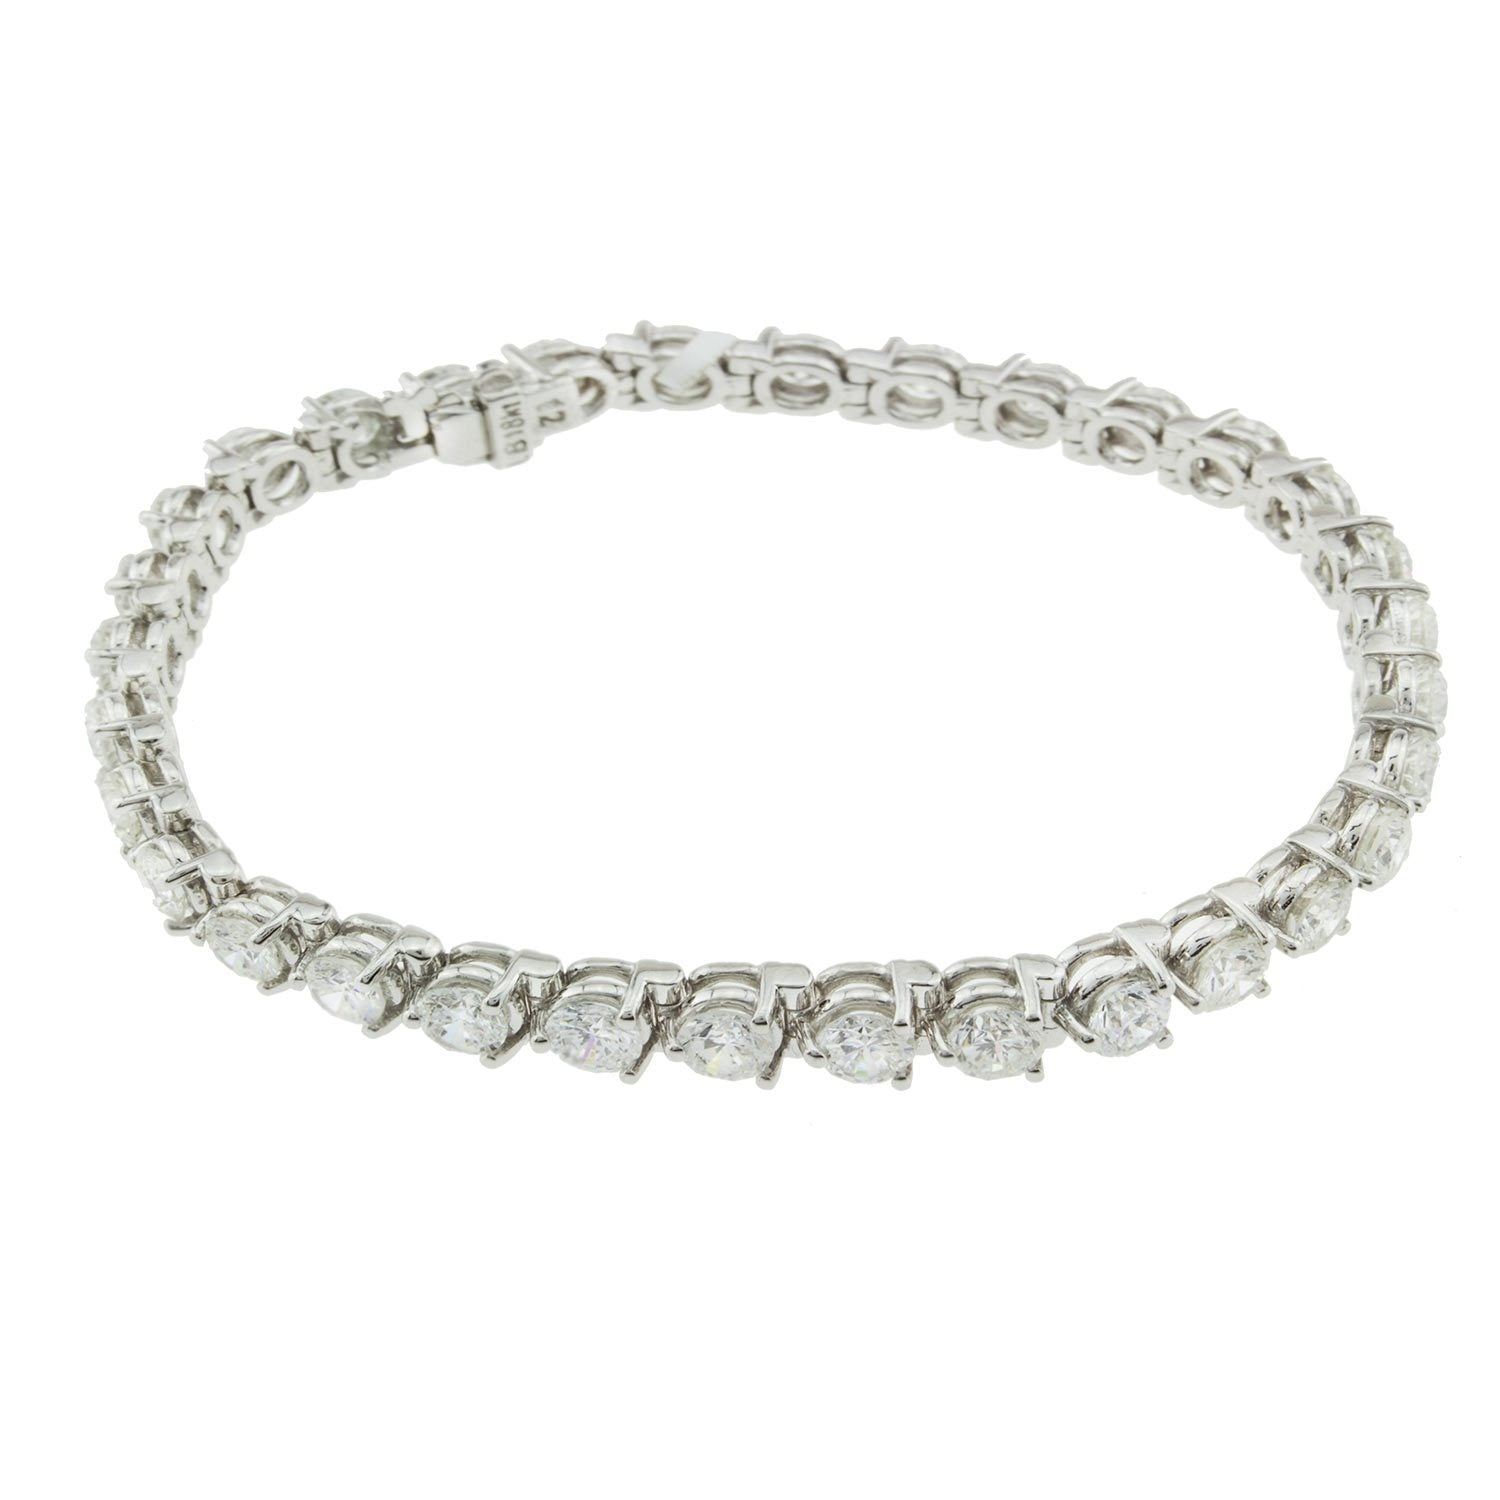 18K White Gold Diamond Tennis Bracelet With Round Cut Diamonds 9.50CT